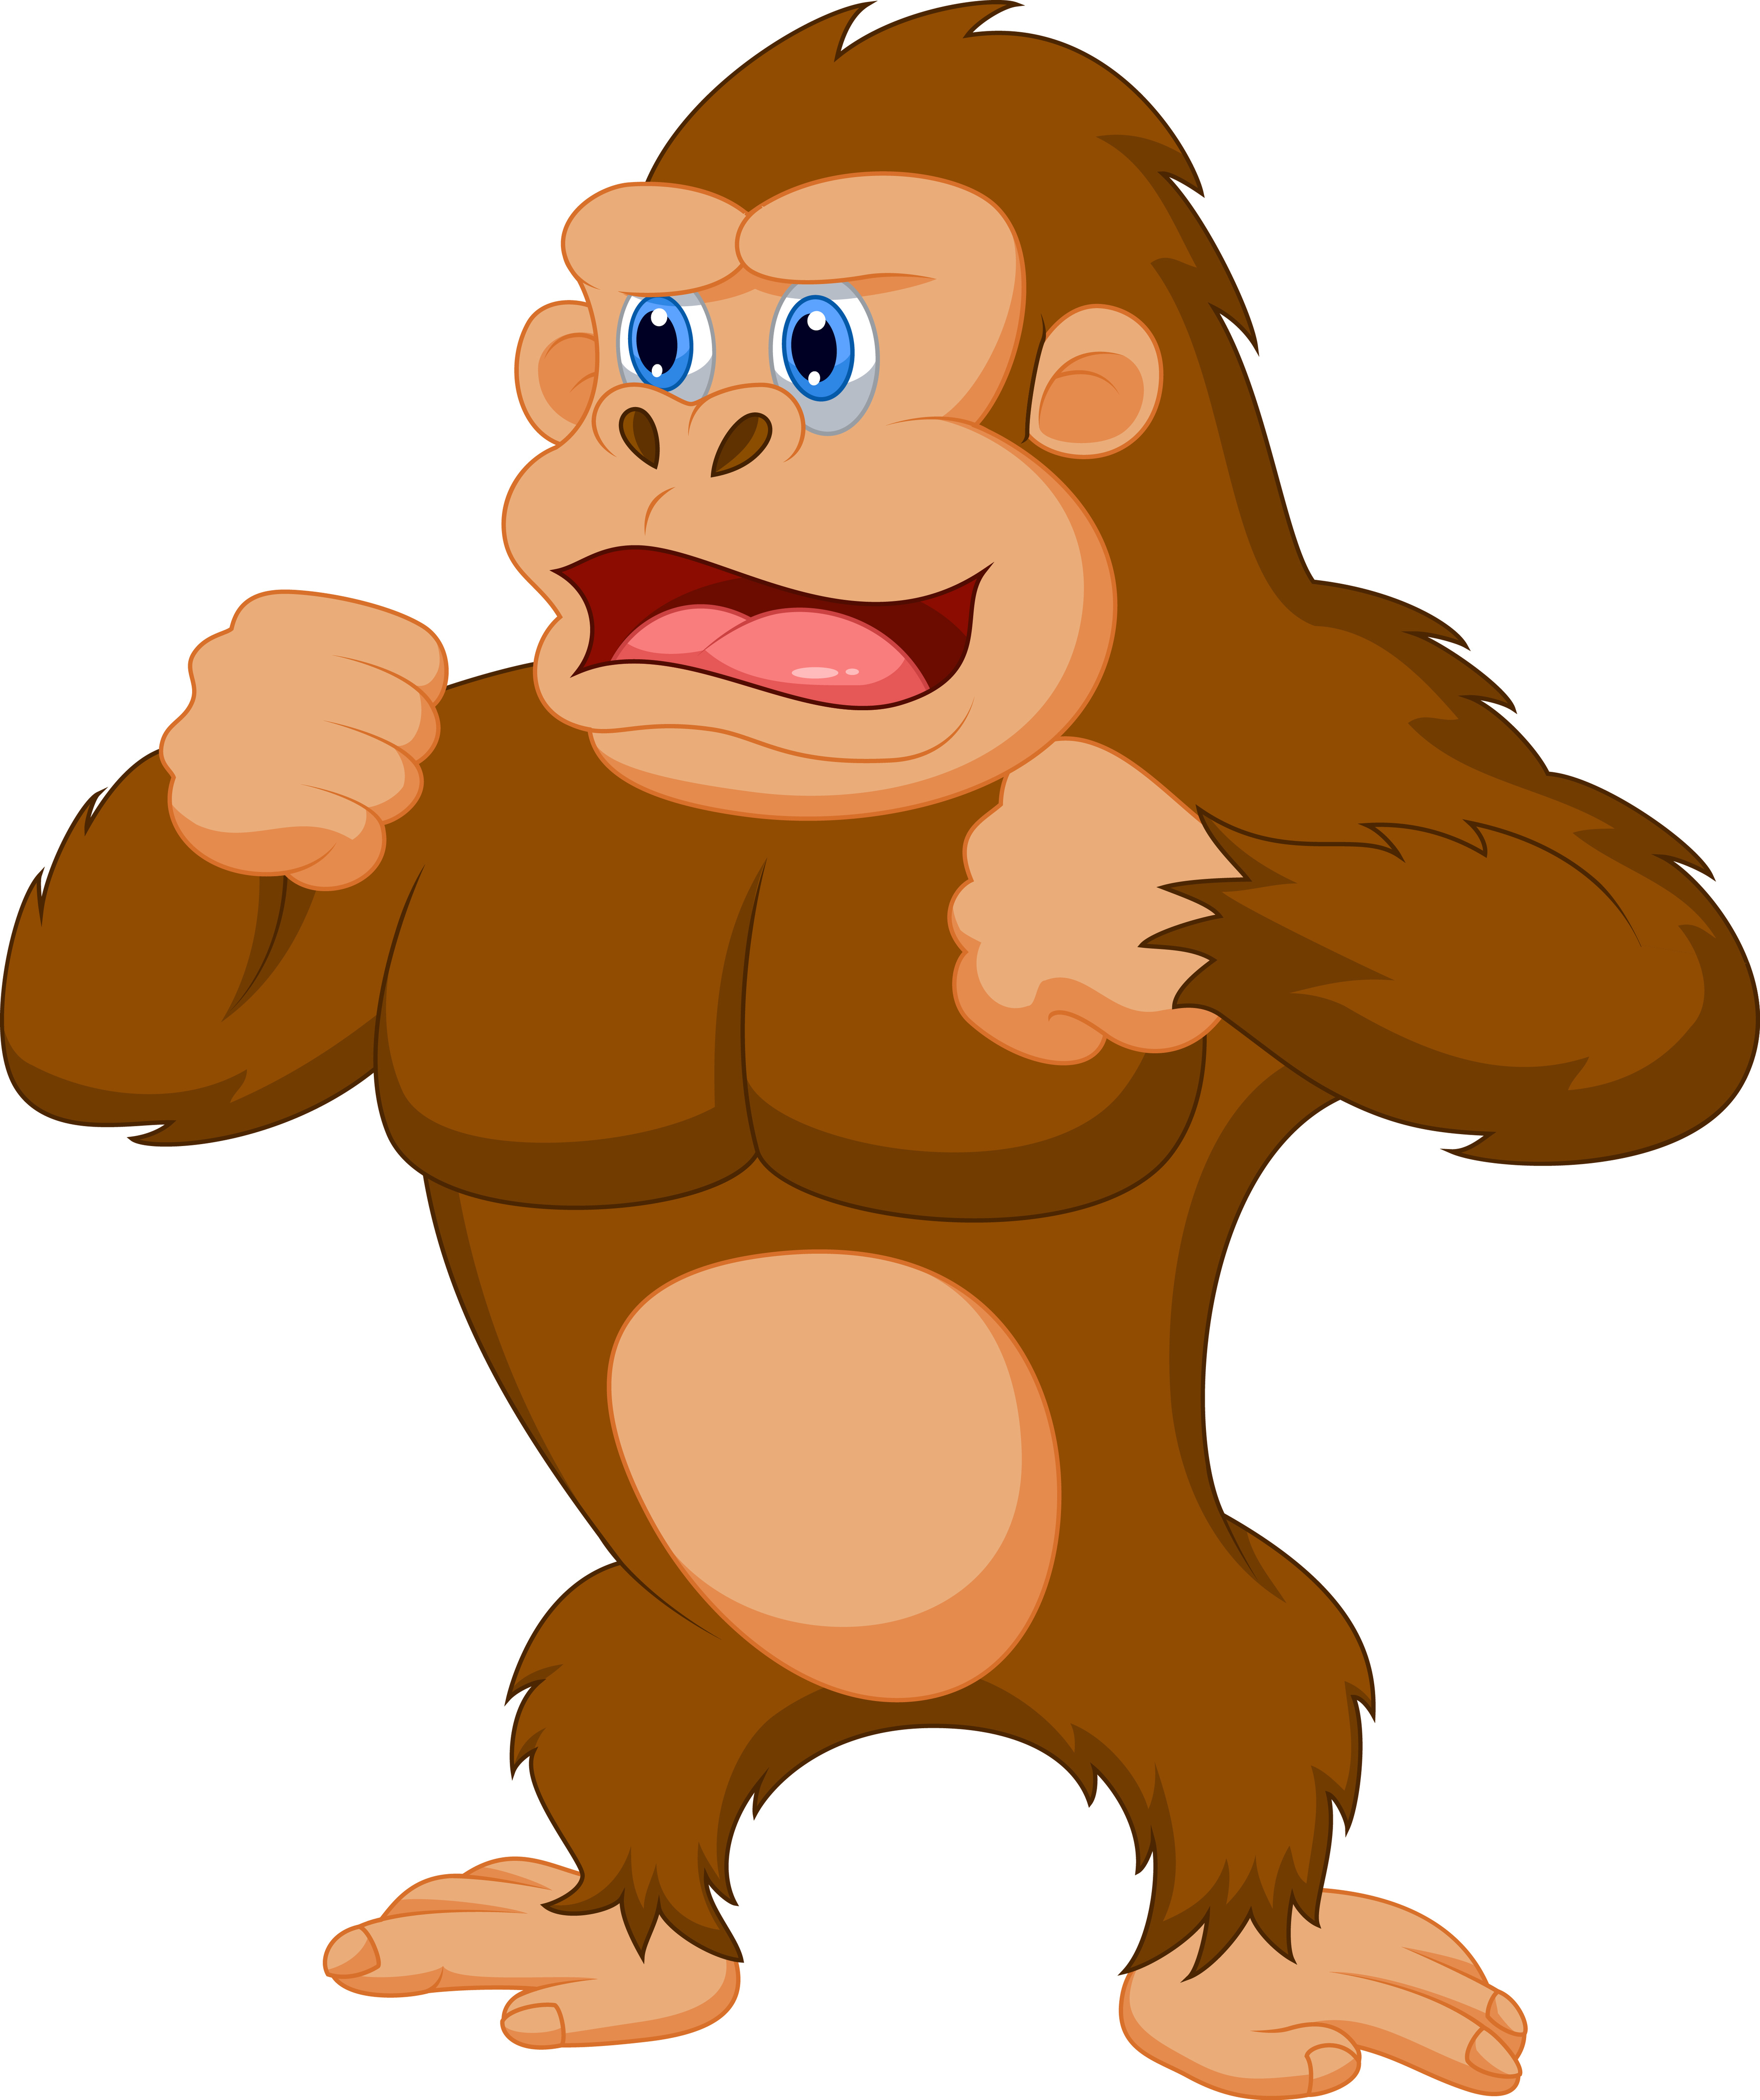 jpg transparent library Ape clipart. For free images .